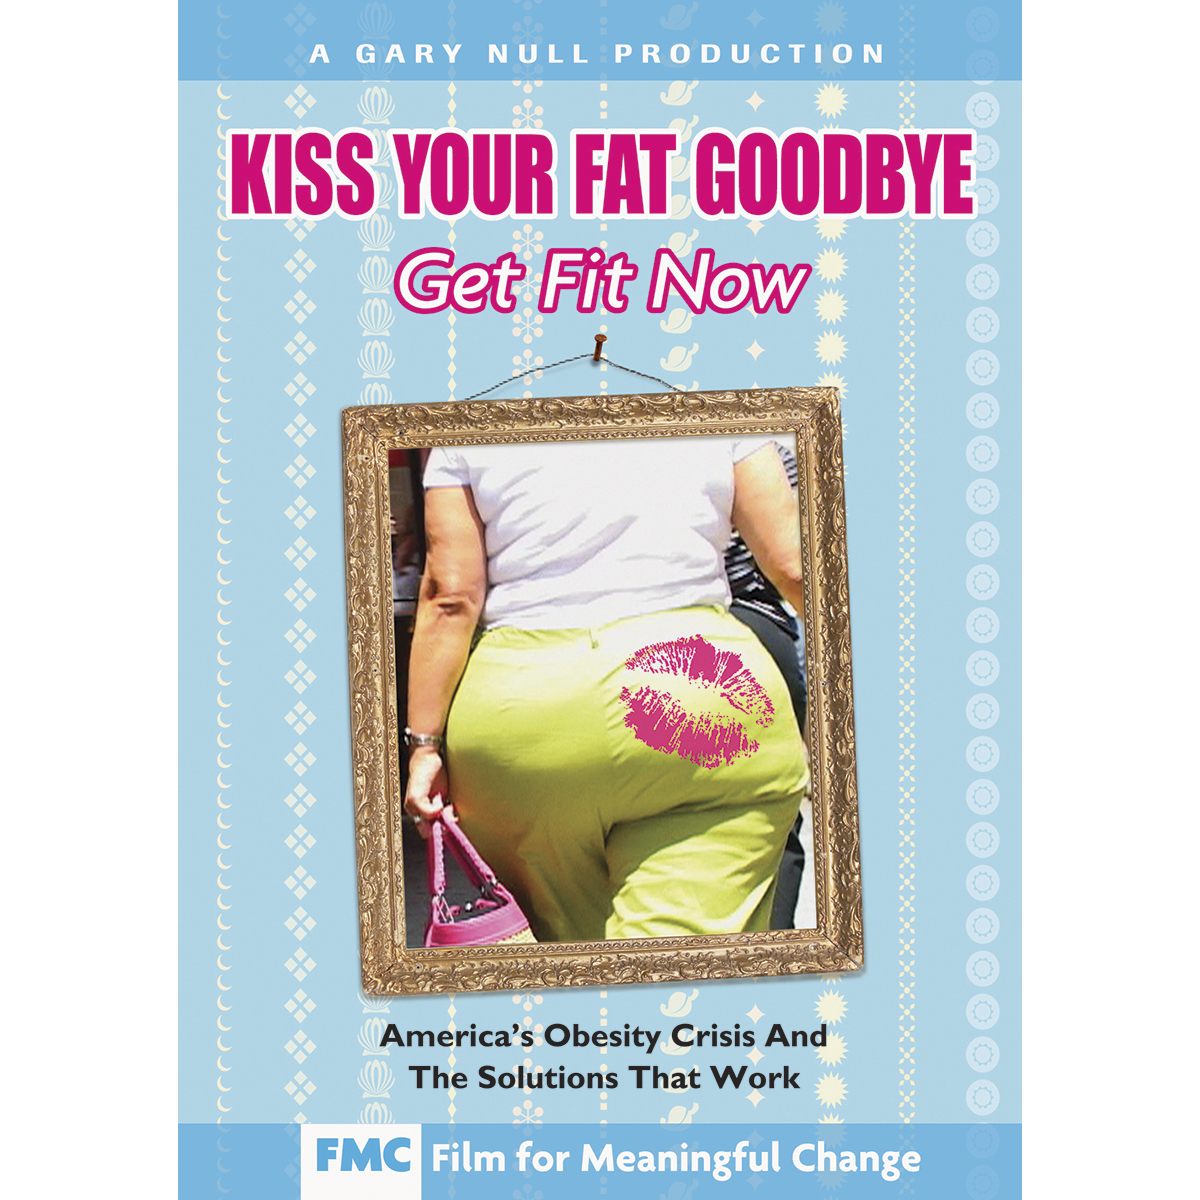 Fitness Dvd For Very Unfit: Kiss Your Fat Goodbye: Get Fit Now DVD